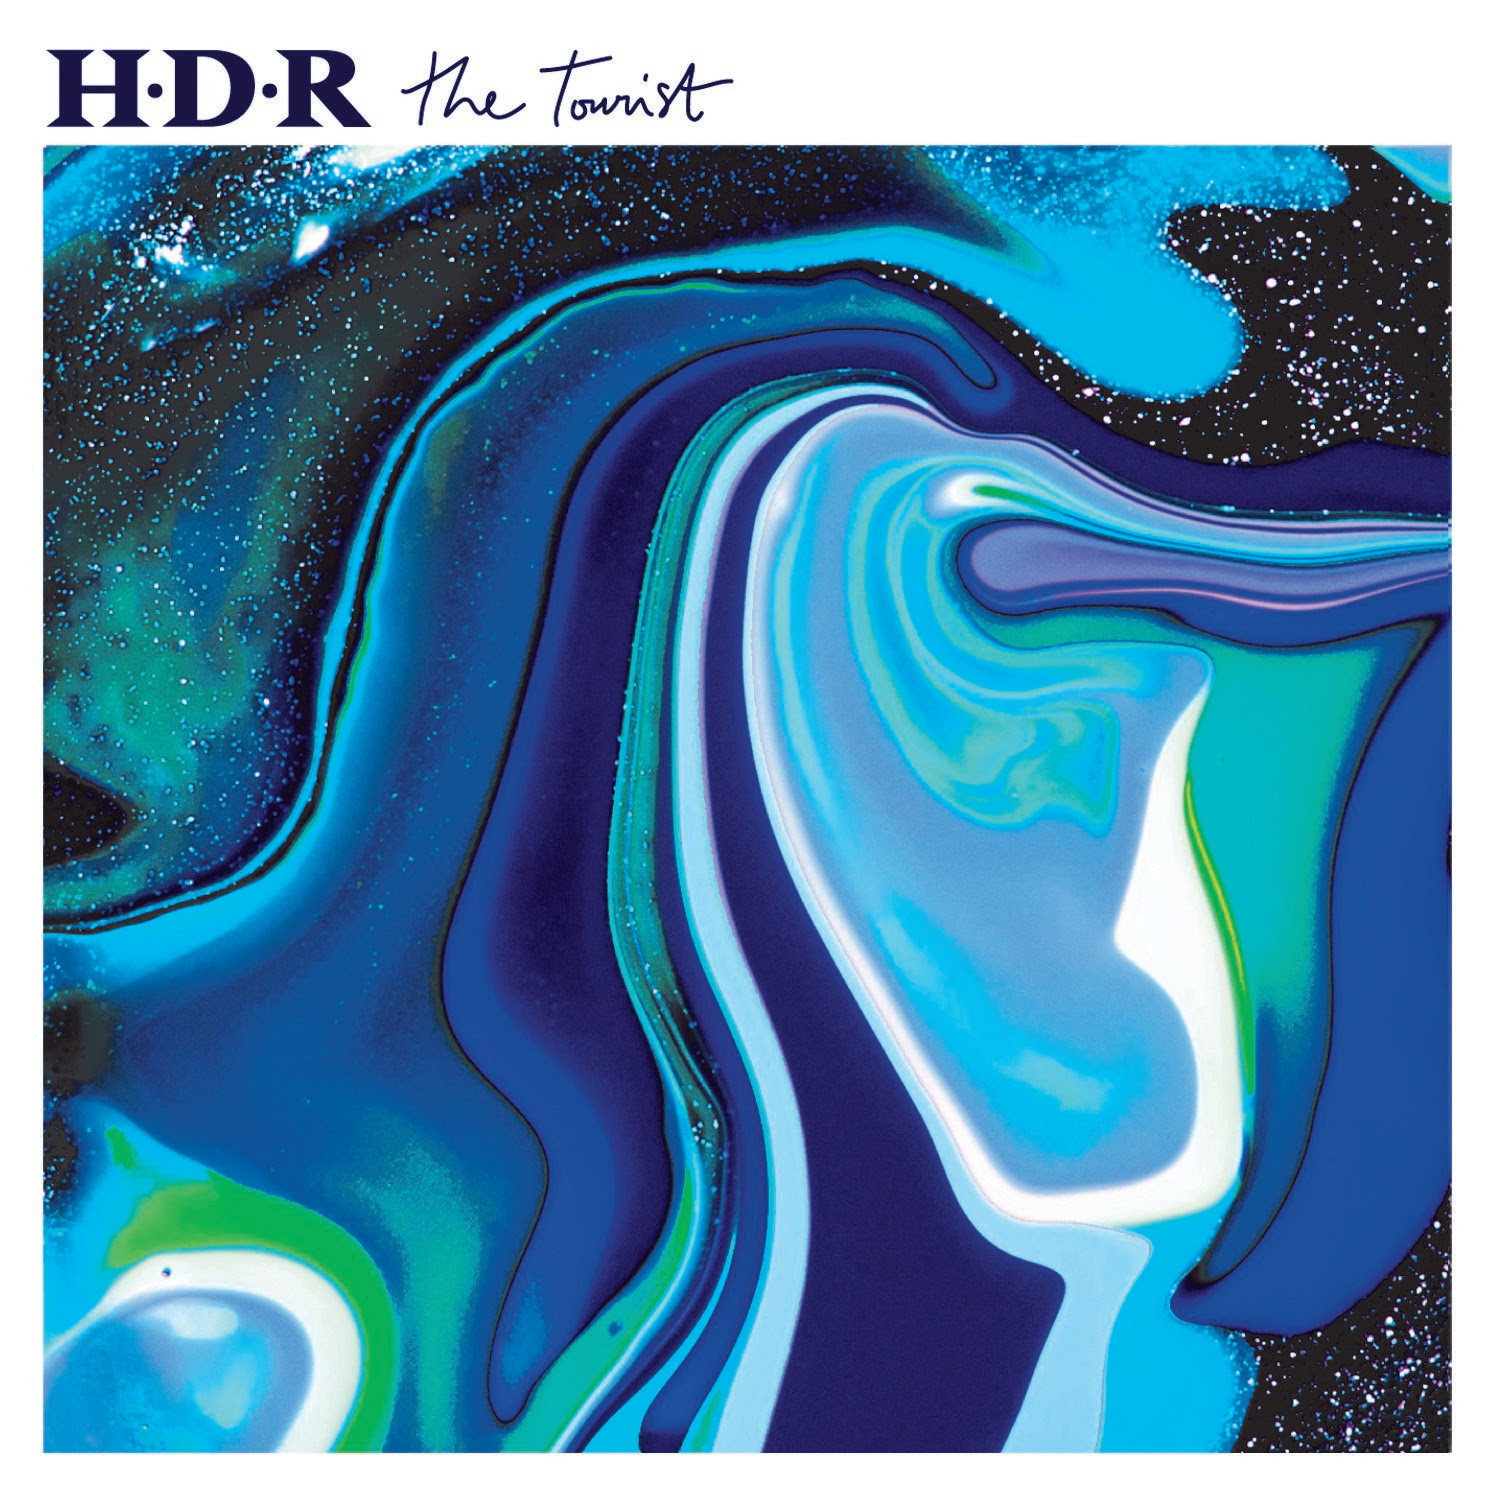 Review of Housse De Racket's new album 'The Tourist', the french duo's forthcoming release comes out on October 30sth